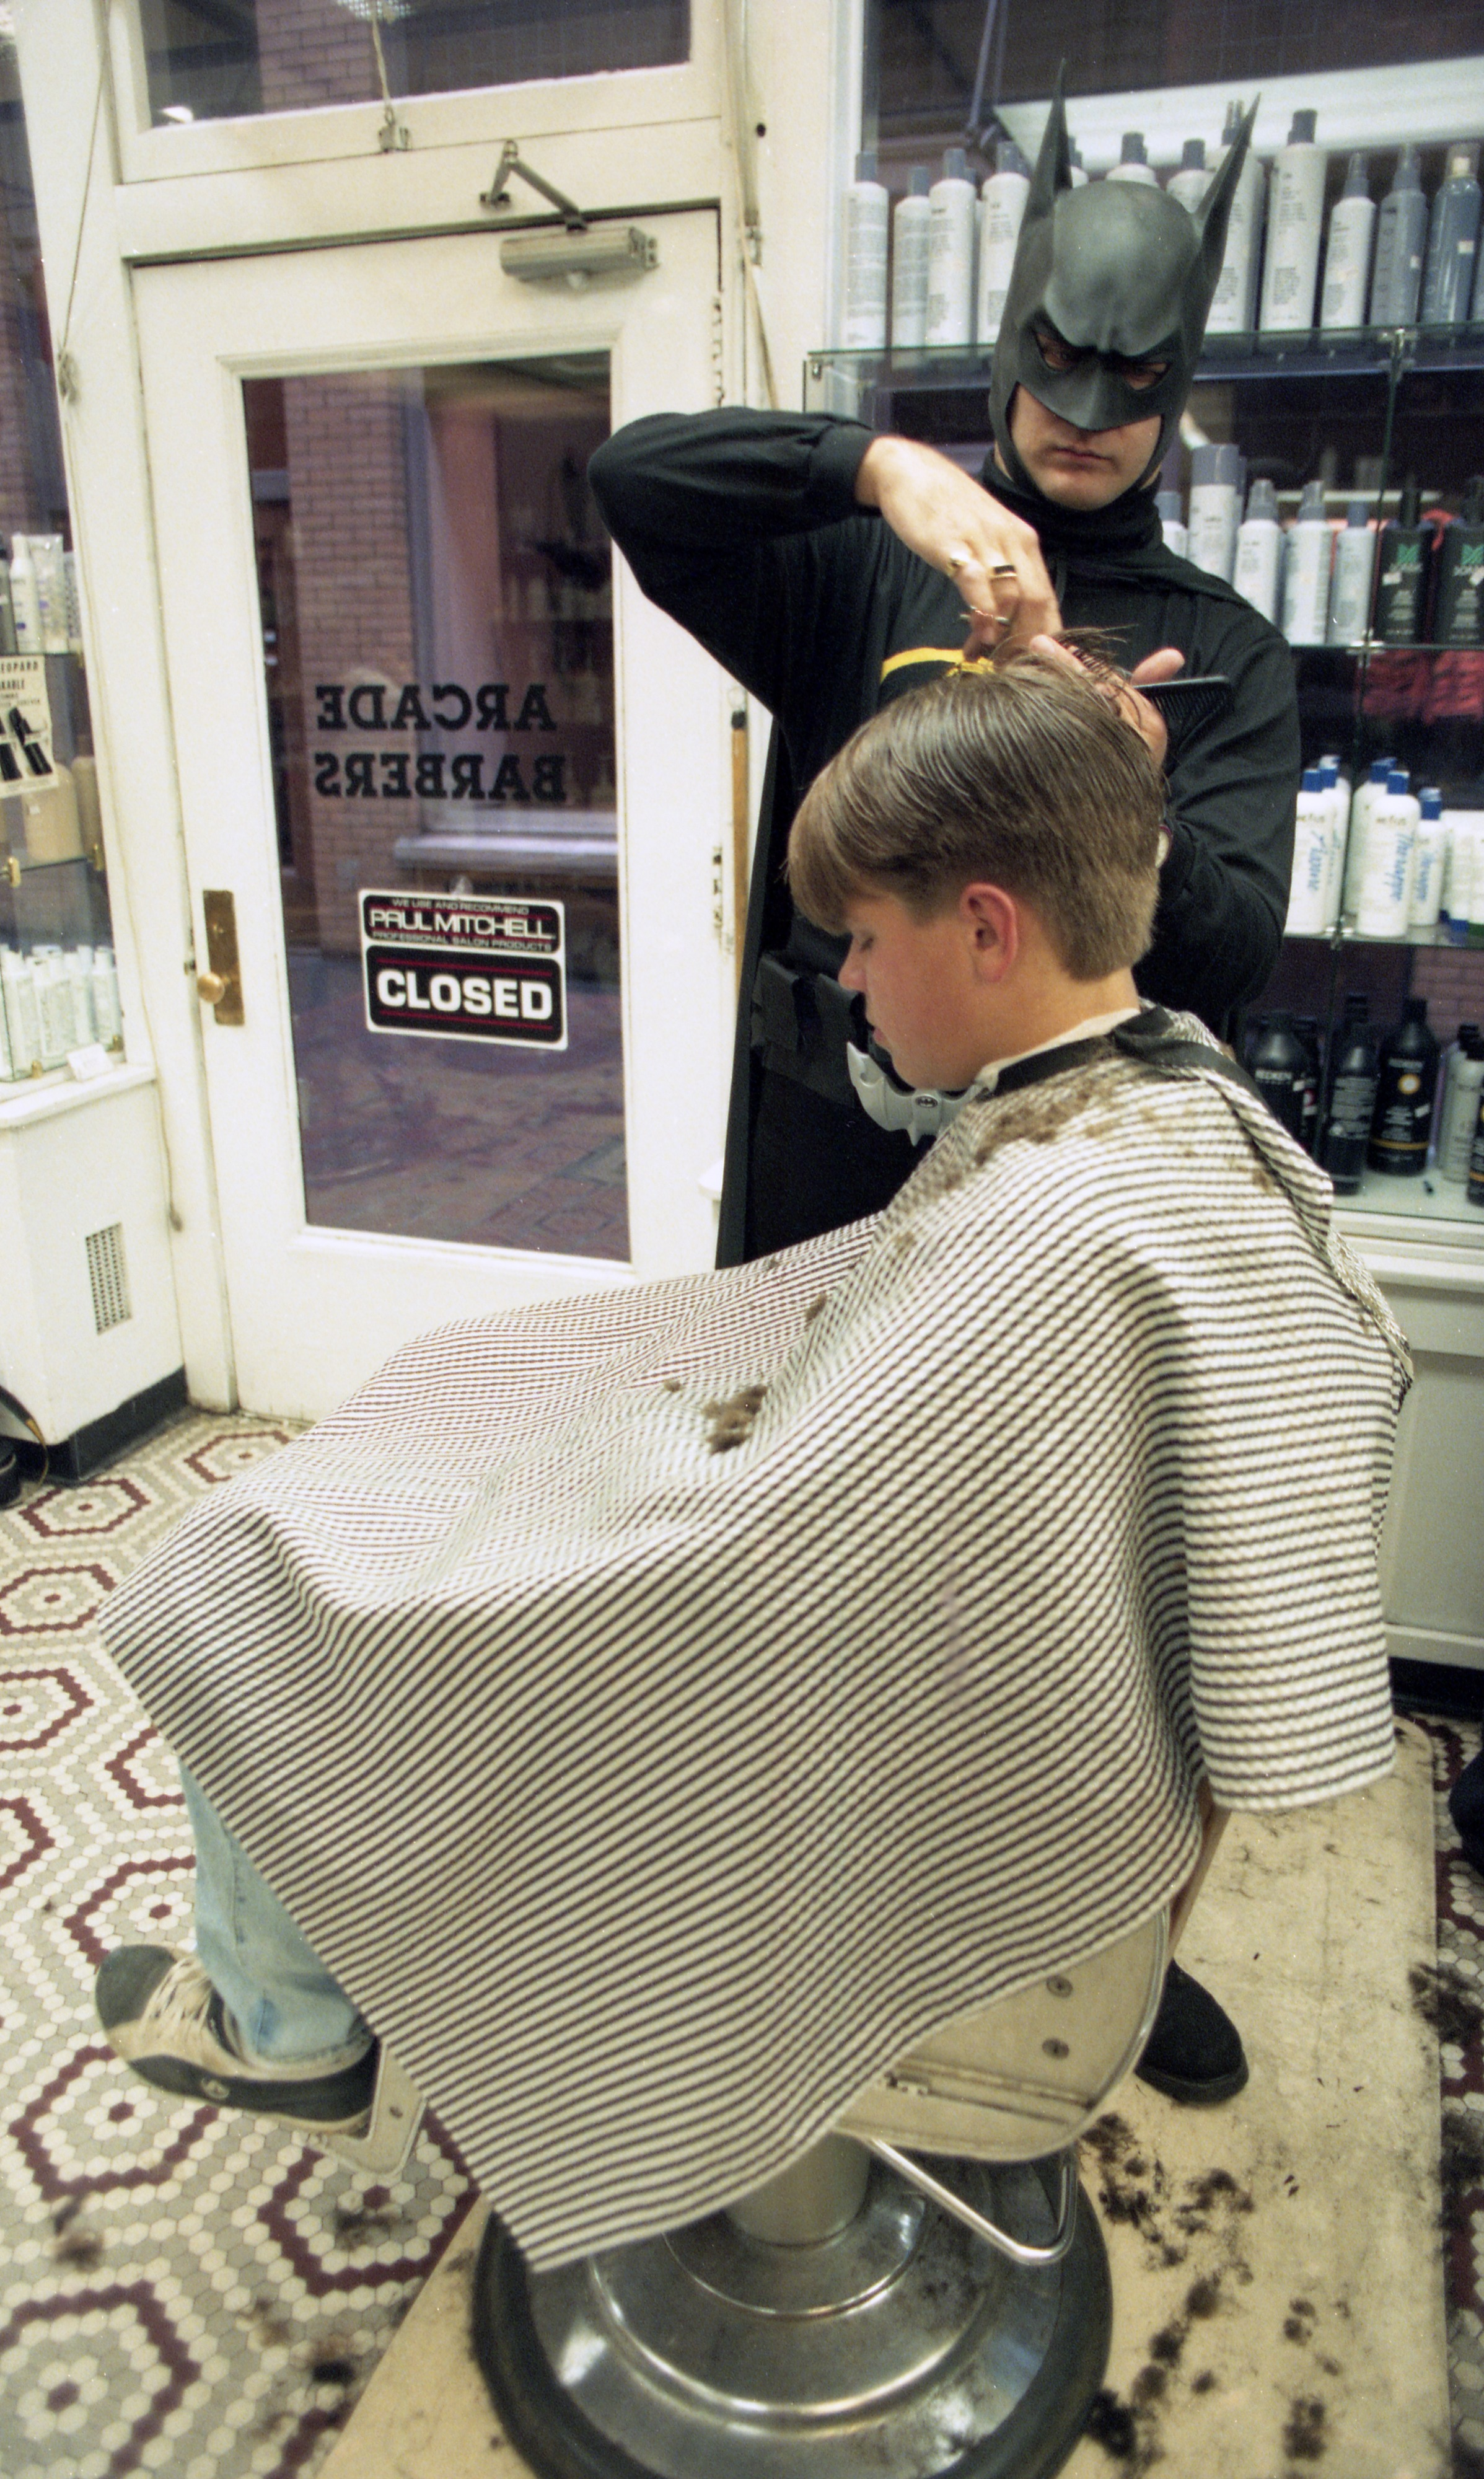 Batman Cuts Hair At The Arcade Barbers On Halloween - October 31, 1994 image